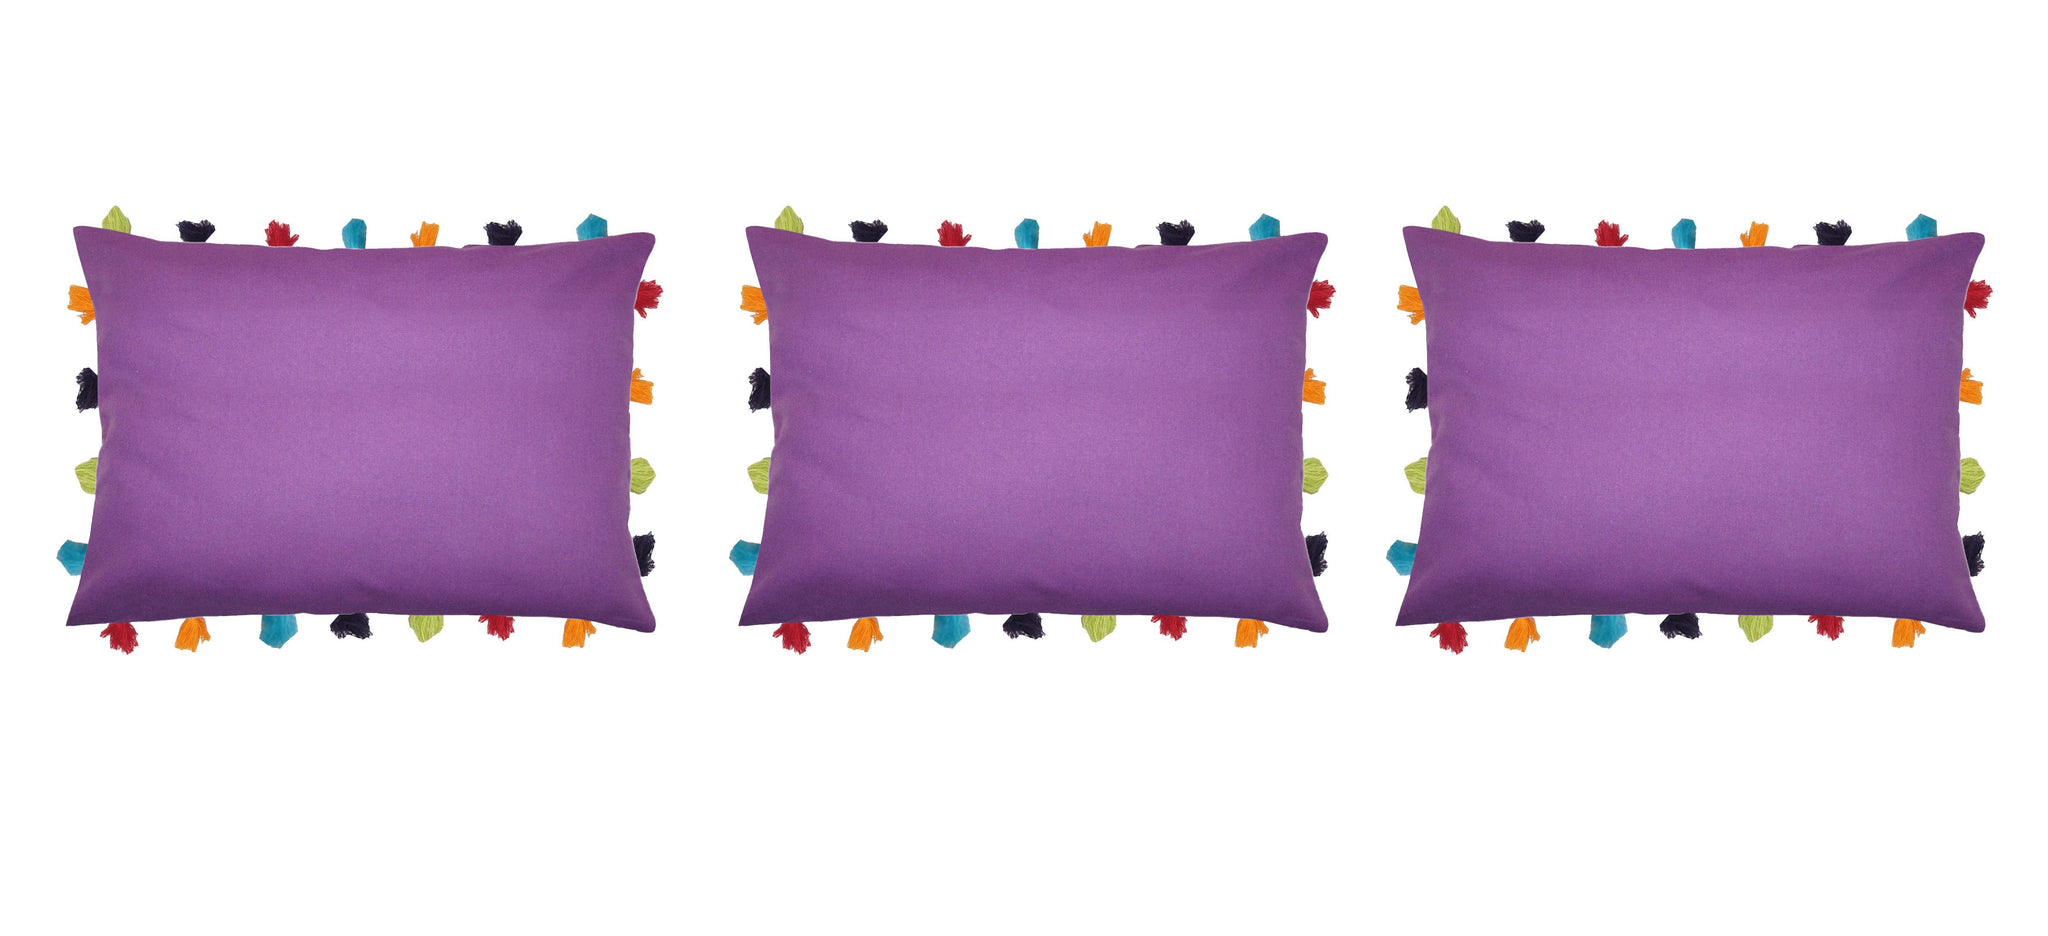 "Lushomes Royal Lilac Cushion Cover with Colorful tassels (3 pcs, 14 x 20"") - Lushomes"